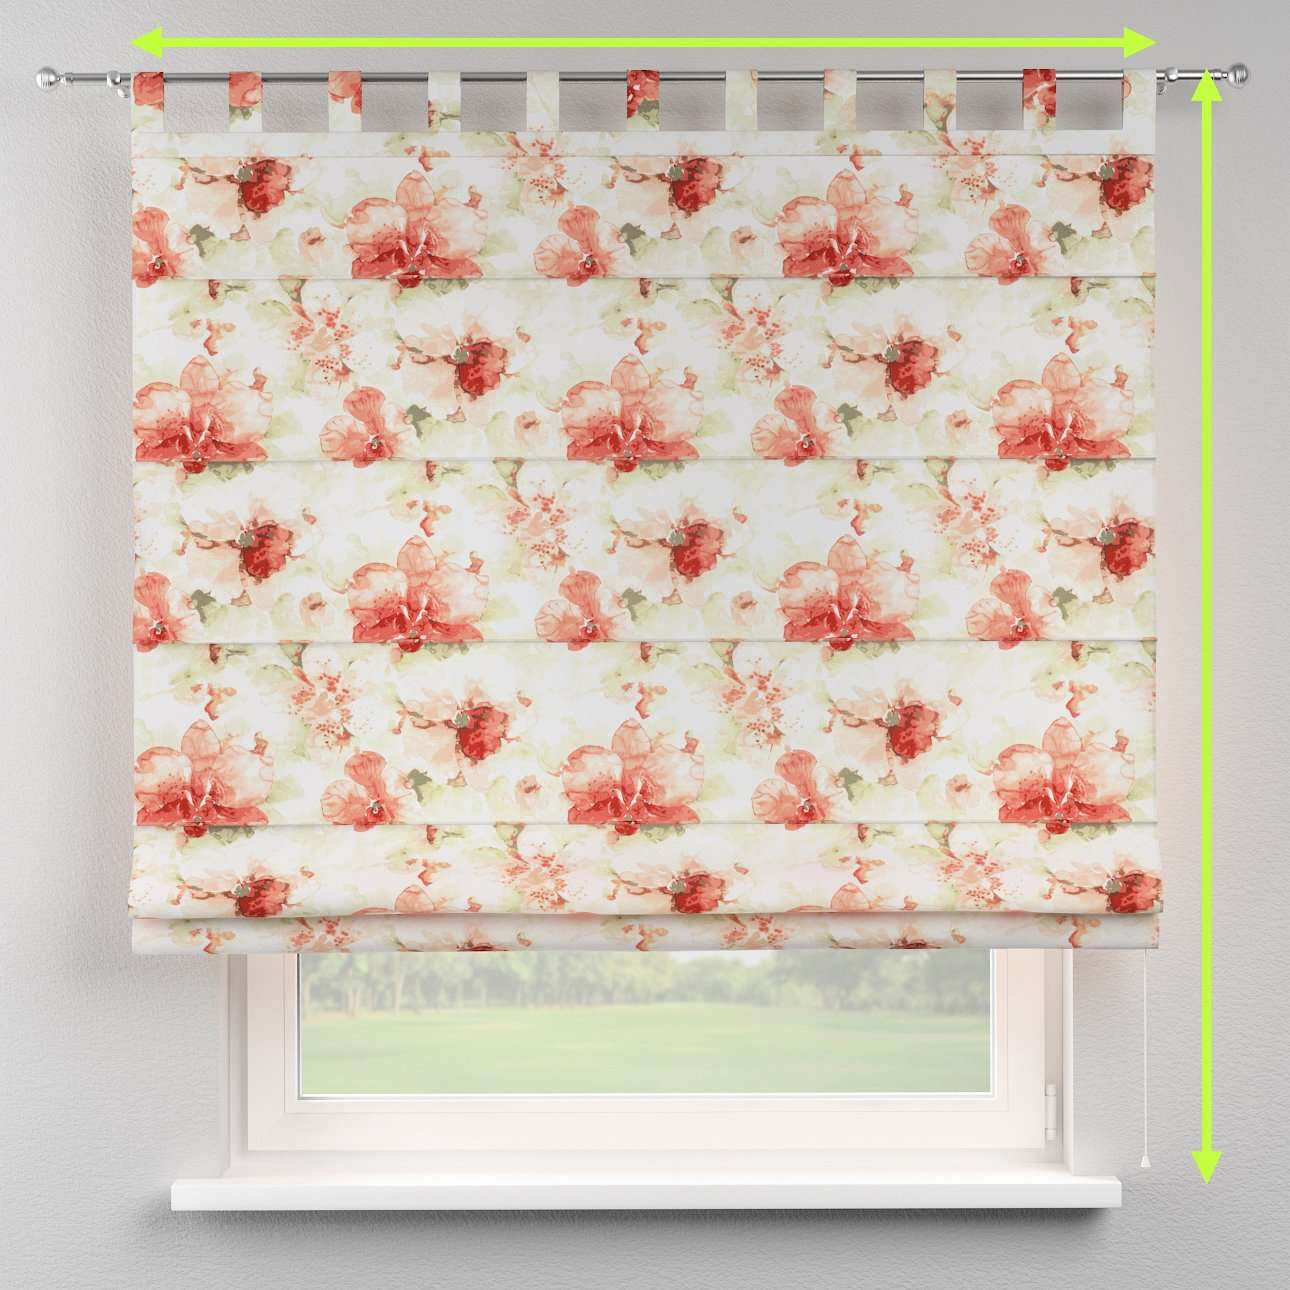 Verona tab top roman blind in collection Acapulco, fabric: 141-34